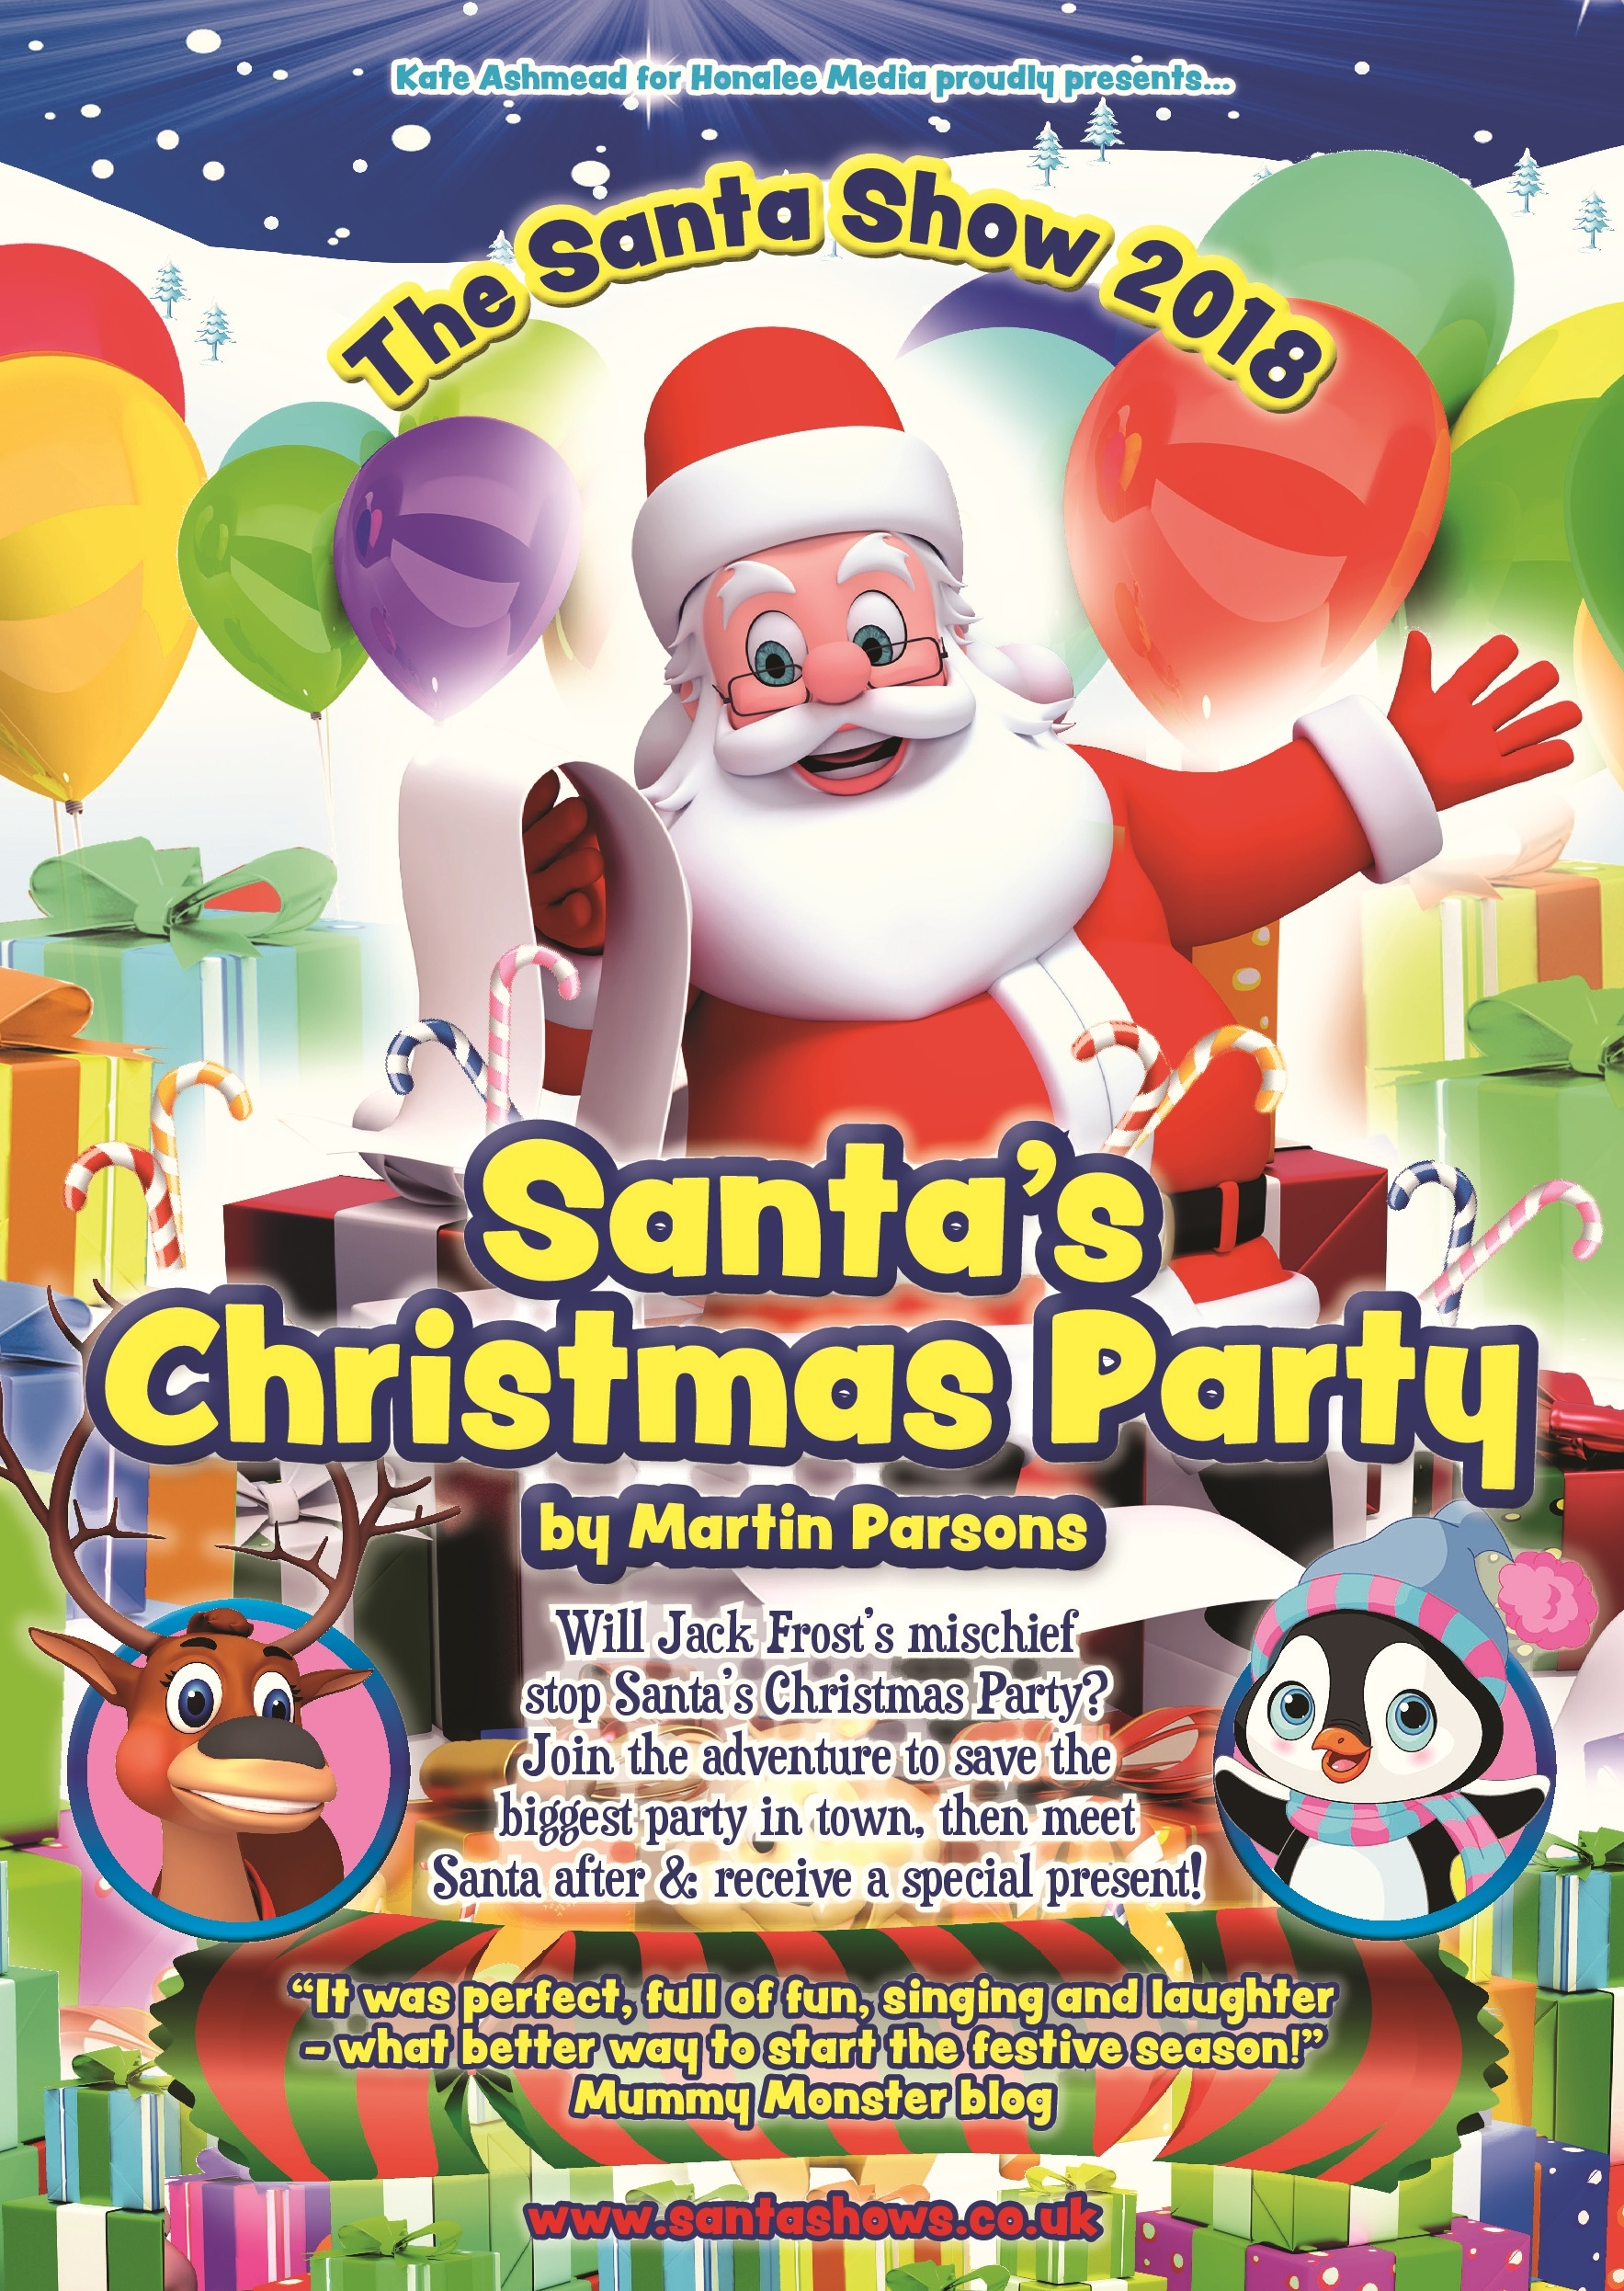 The Santa Show 2018: Santa's Christmas Party